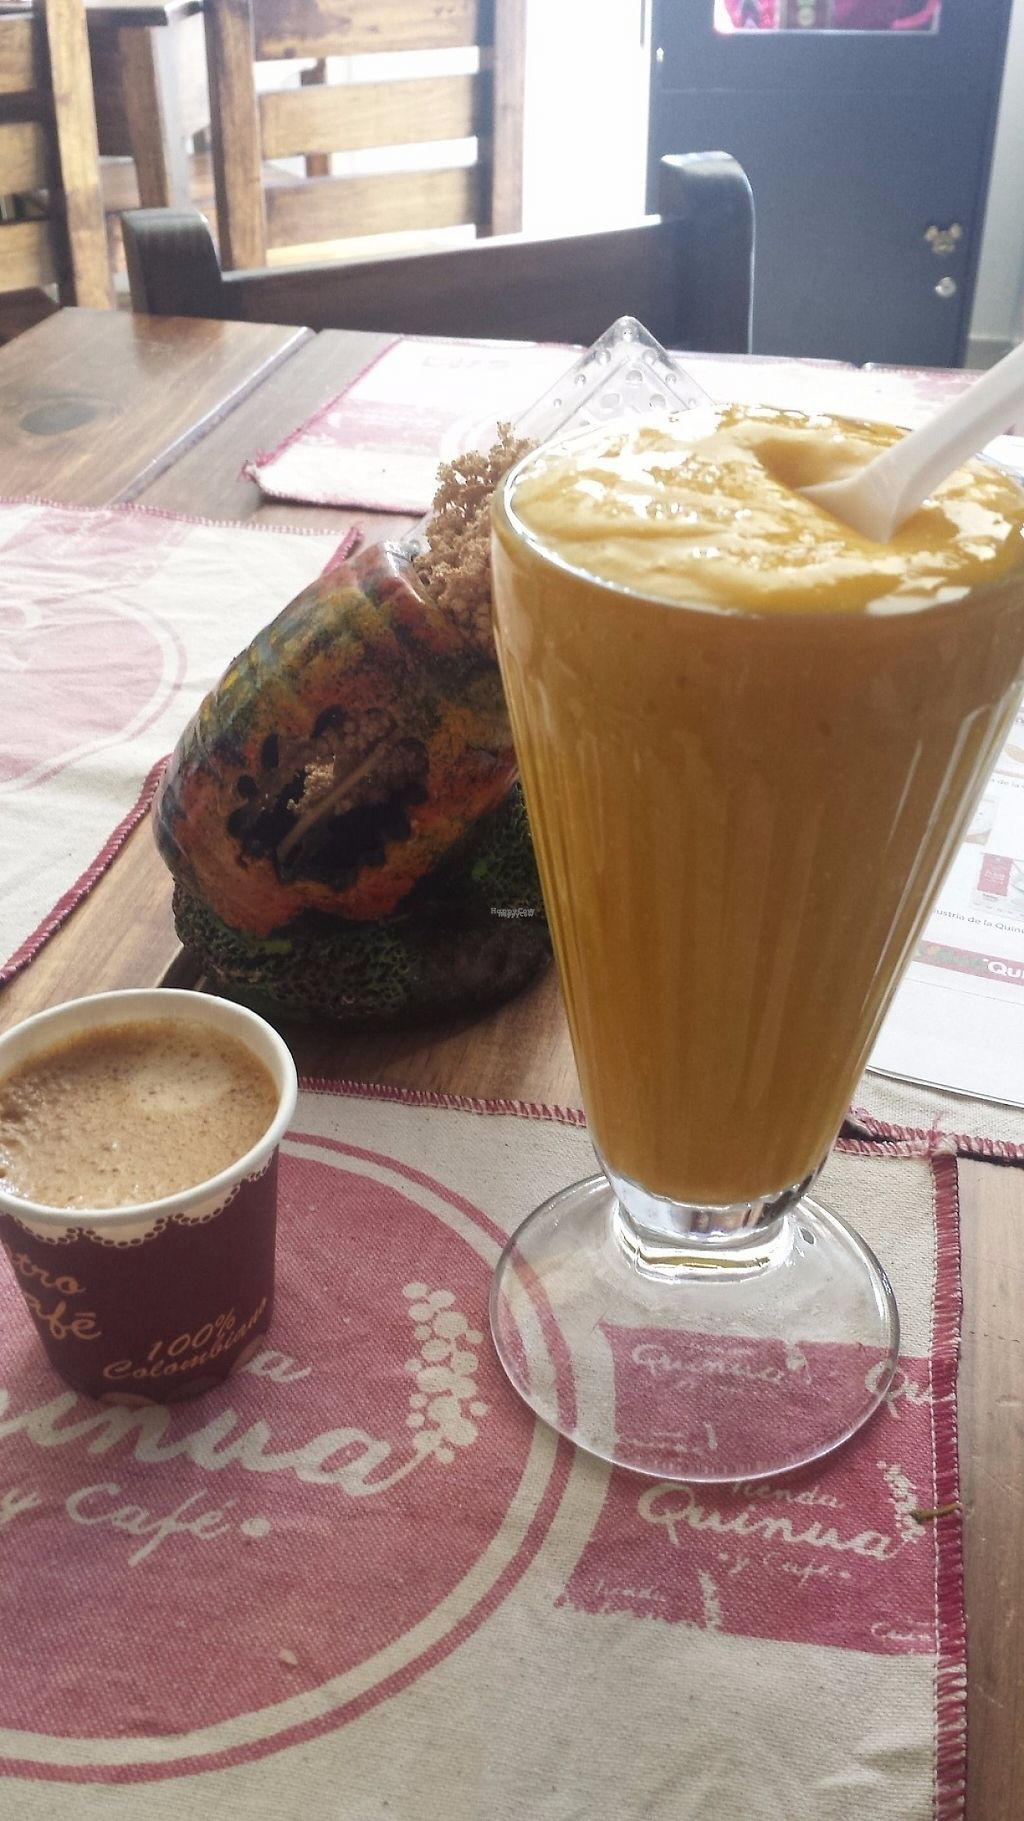 """Photo of Tienda Quinua y Cafe  by <a href=""""/members/profile/Simon-S1"""">Simon-S1</a> <br/>Quinua + Mango + soya milk smoothie. £1.15 Coffee (about 25p!) <br/> January 17, 2017  - <a href='/contact/abuse/image/85585/212597'>Report</a>"""